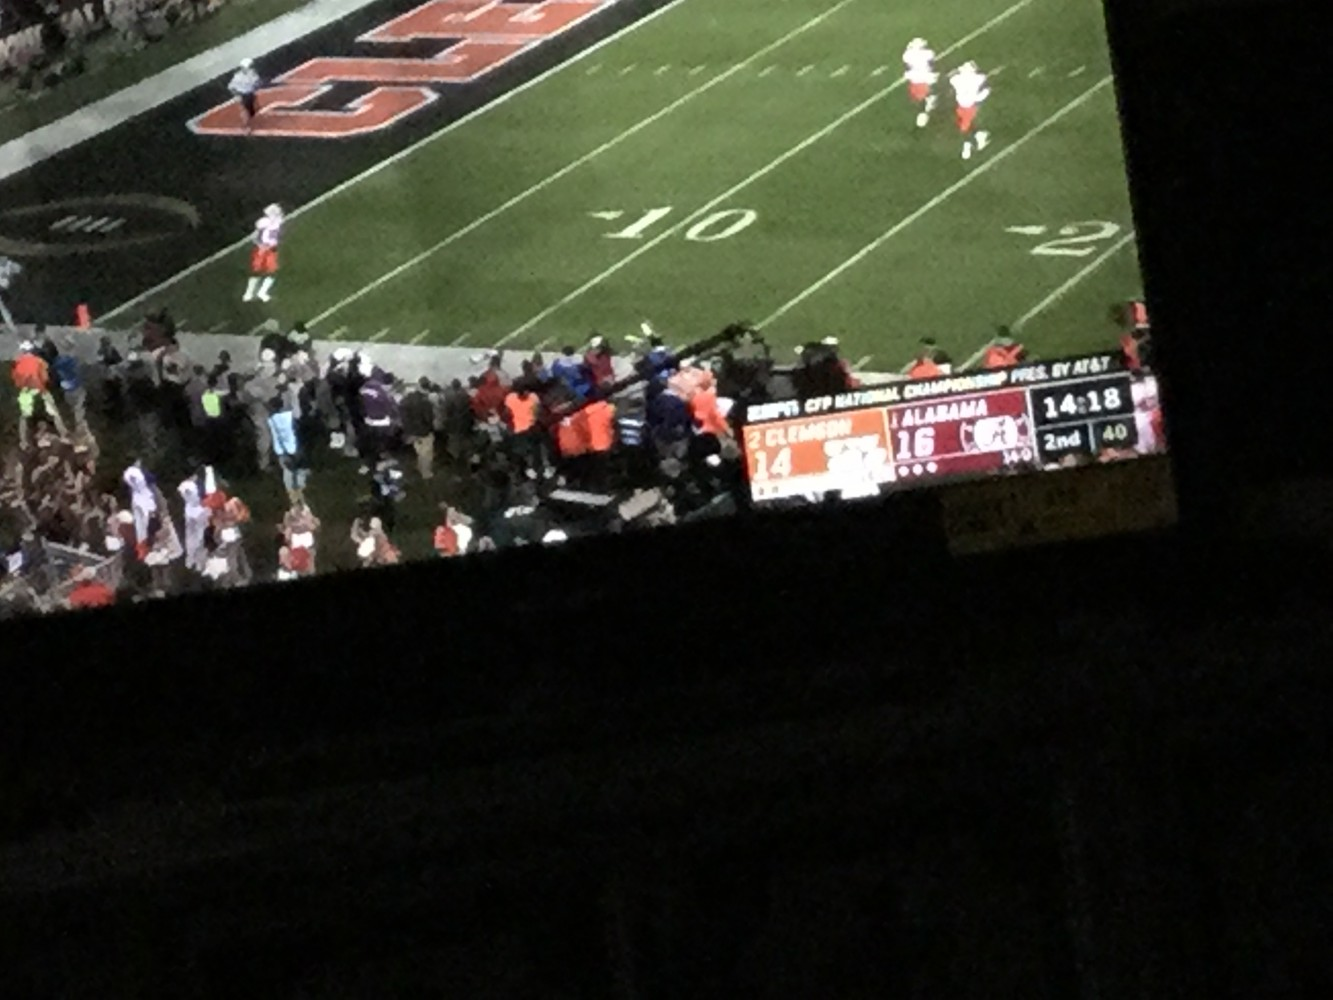 main-image-CLEMSON uploaded by Yourboii